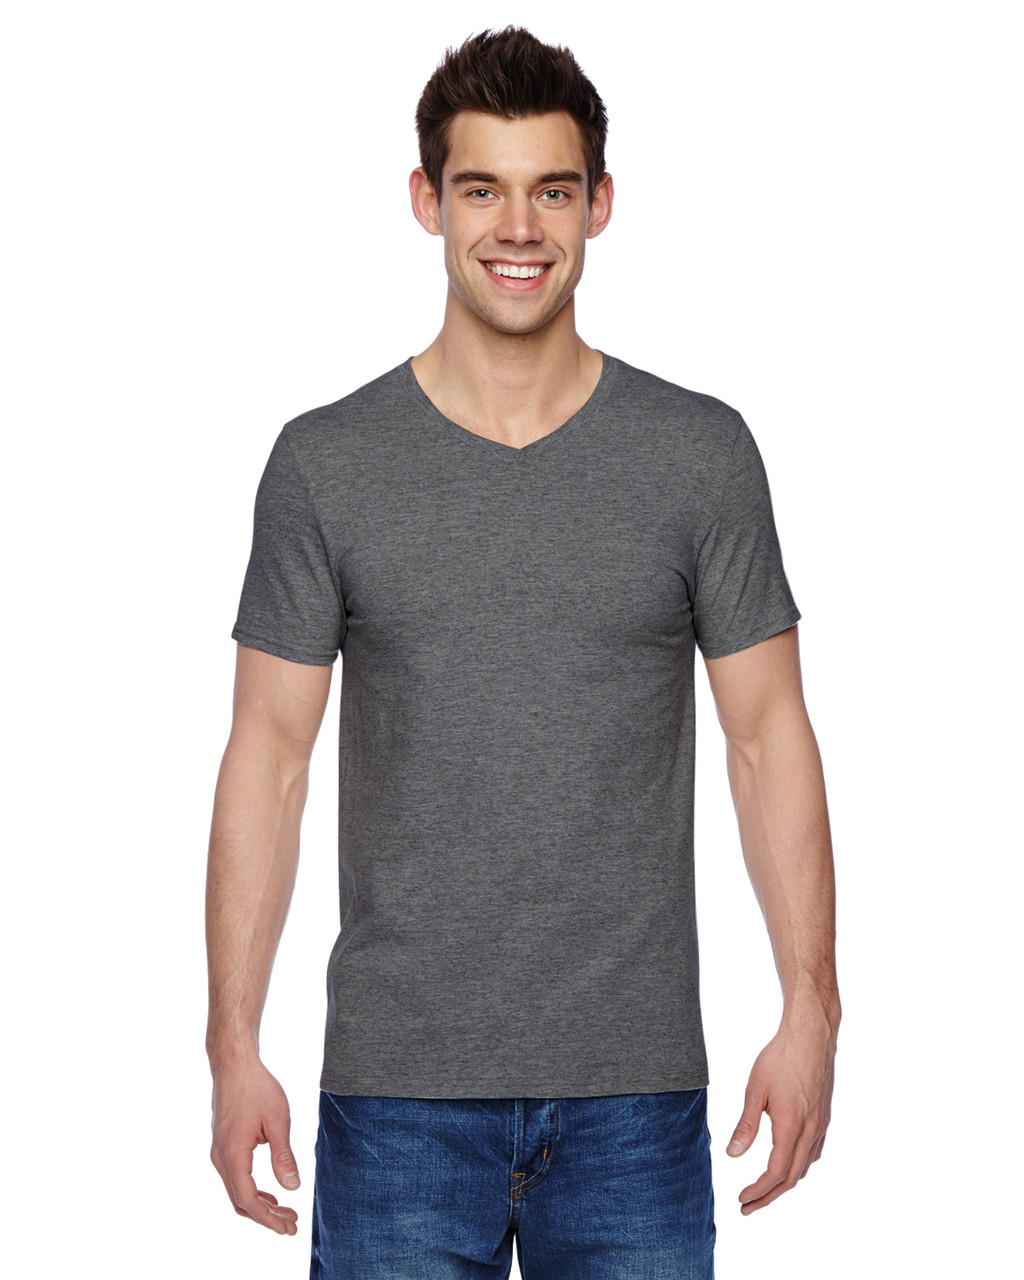 Charcoal SFVR Fruit of the Loom 100% Softspun Cotton Jersey V-Neck T-Shirt | Blankclothing.ca